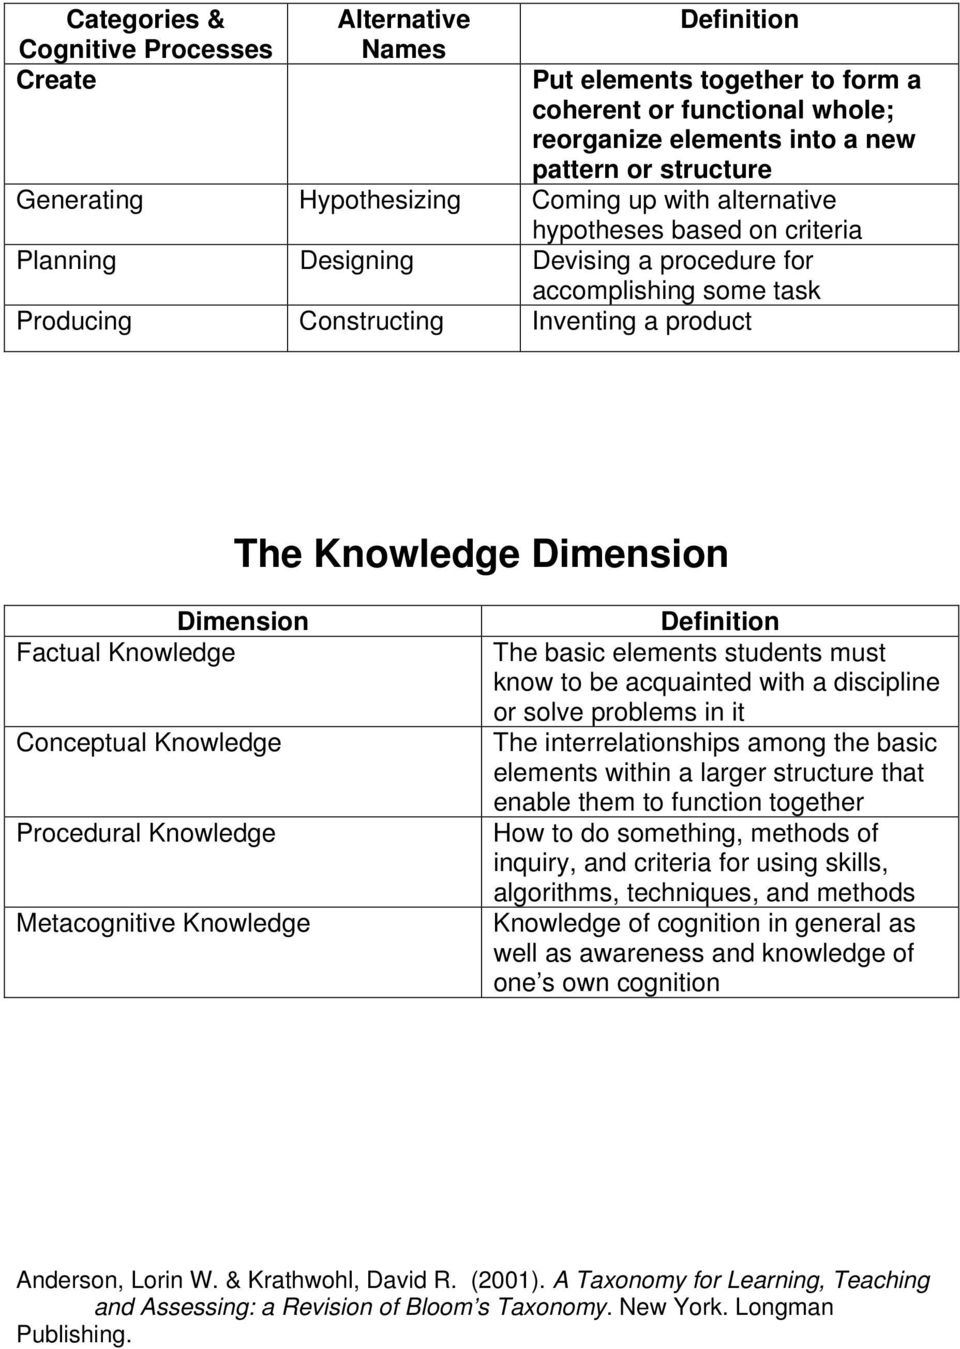 Dimension Dimension Factual Knowledge Conceptual Knowledge Procedural Knowledge Metacognitive Knowledge Definition The basic elements students must know to be acquainted with a discipline or solve